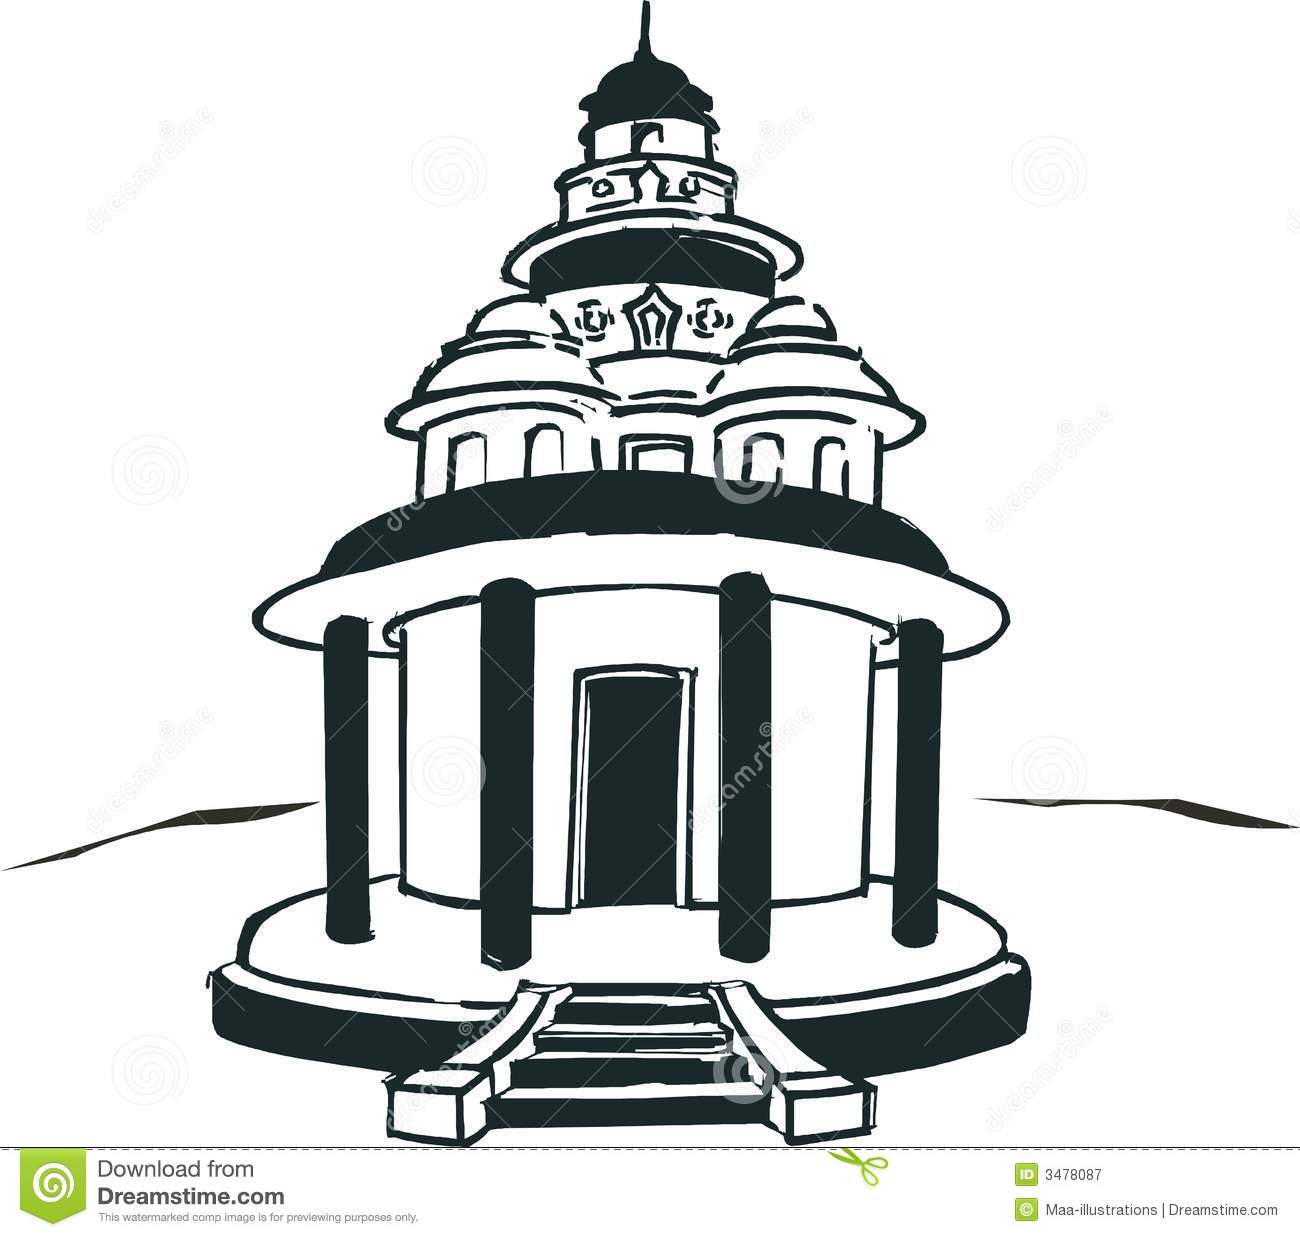 2743 Temple free clipart.